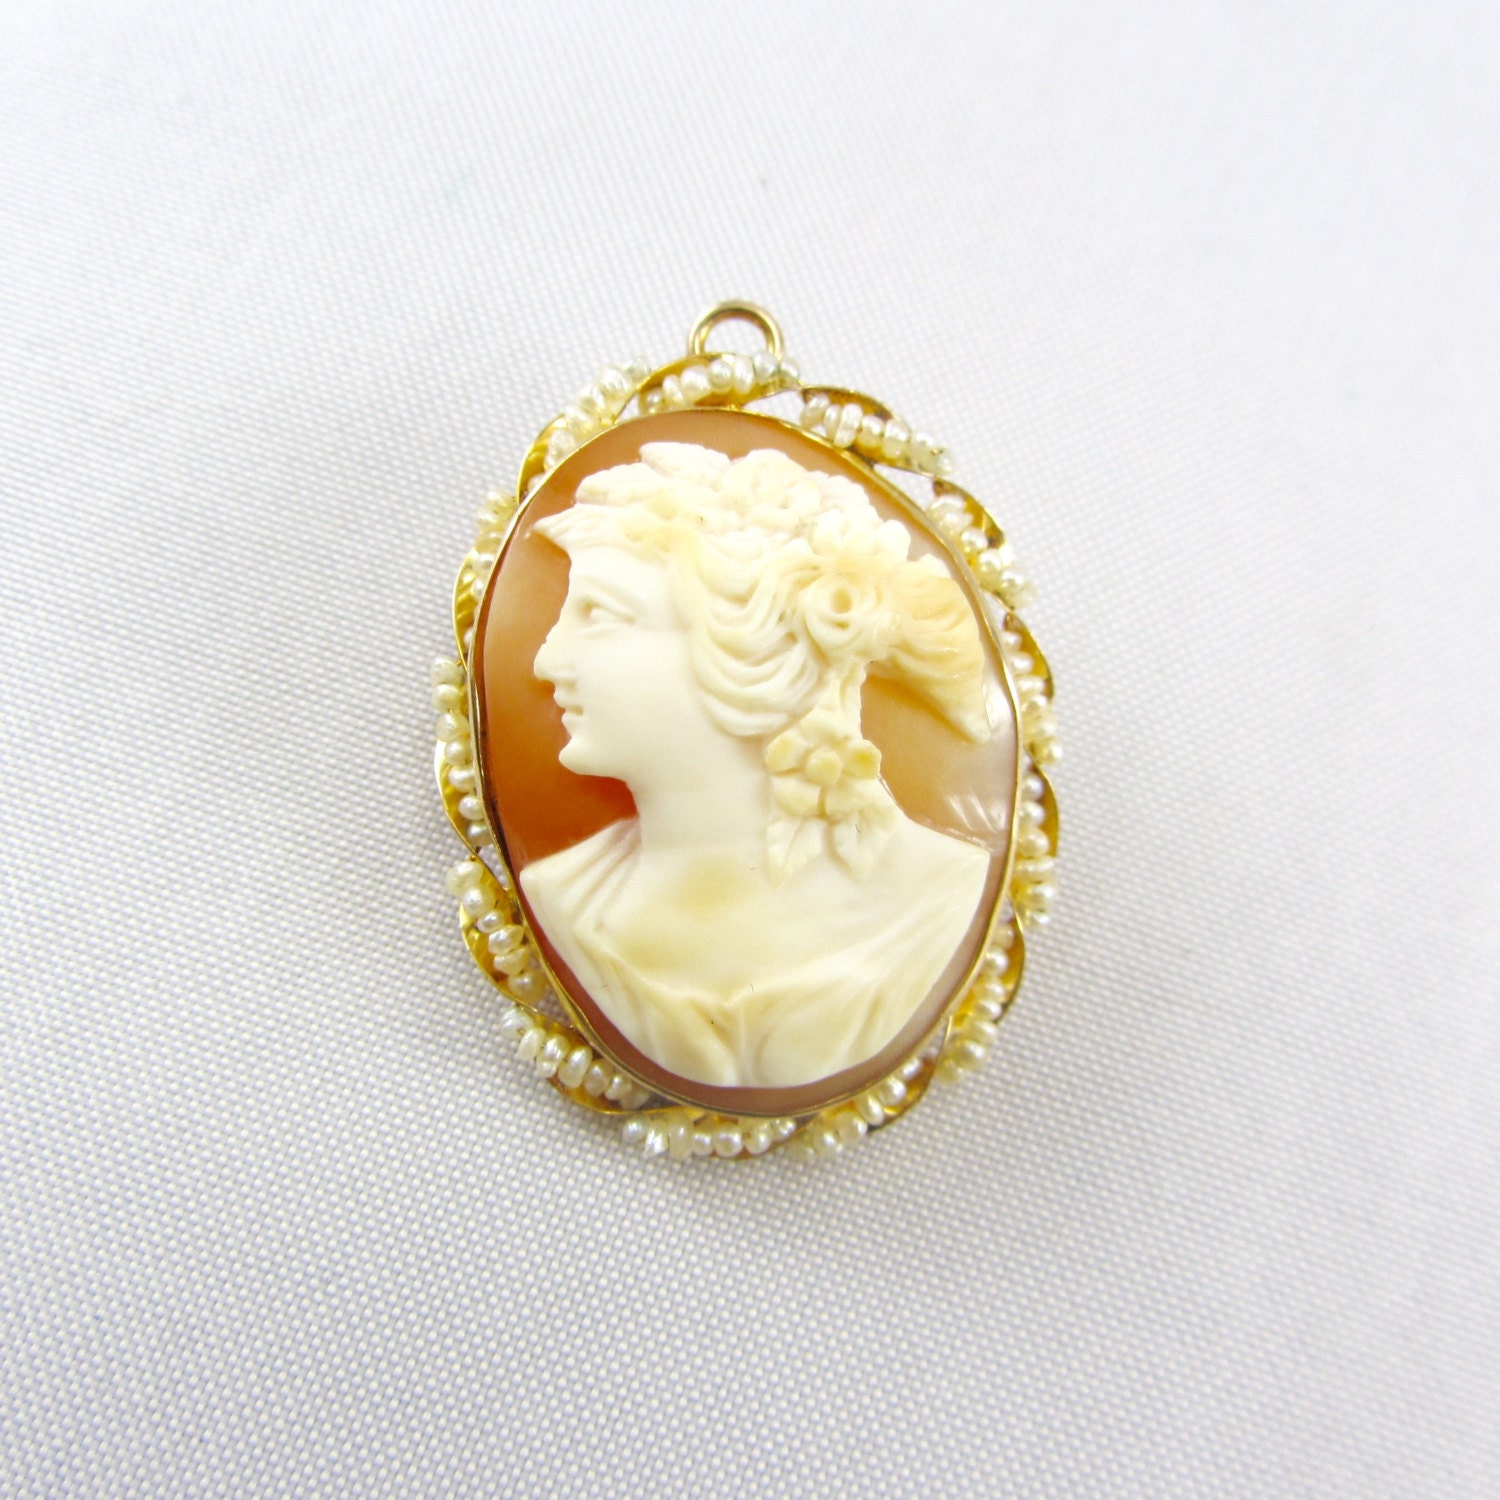 antique 10k gold cameo pendant brooch edwardian by